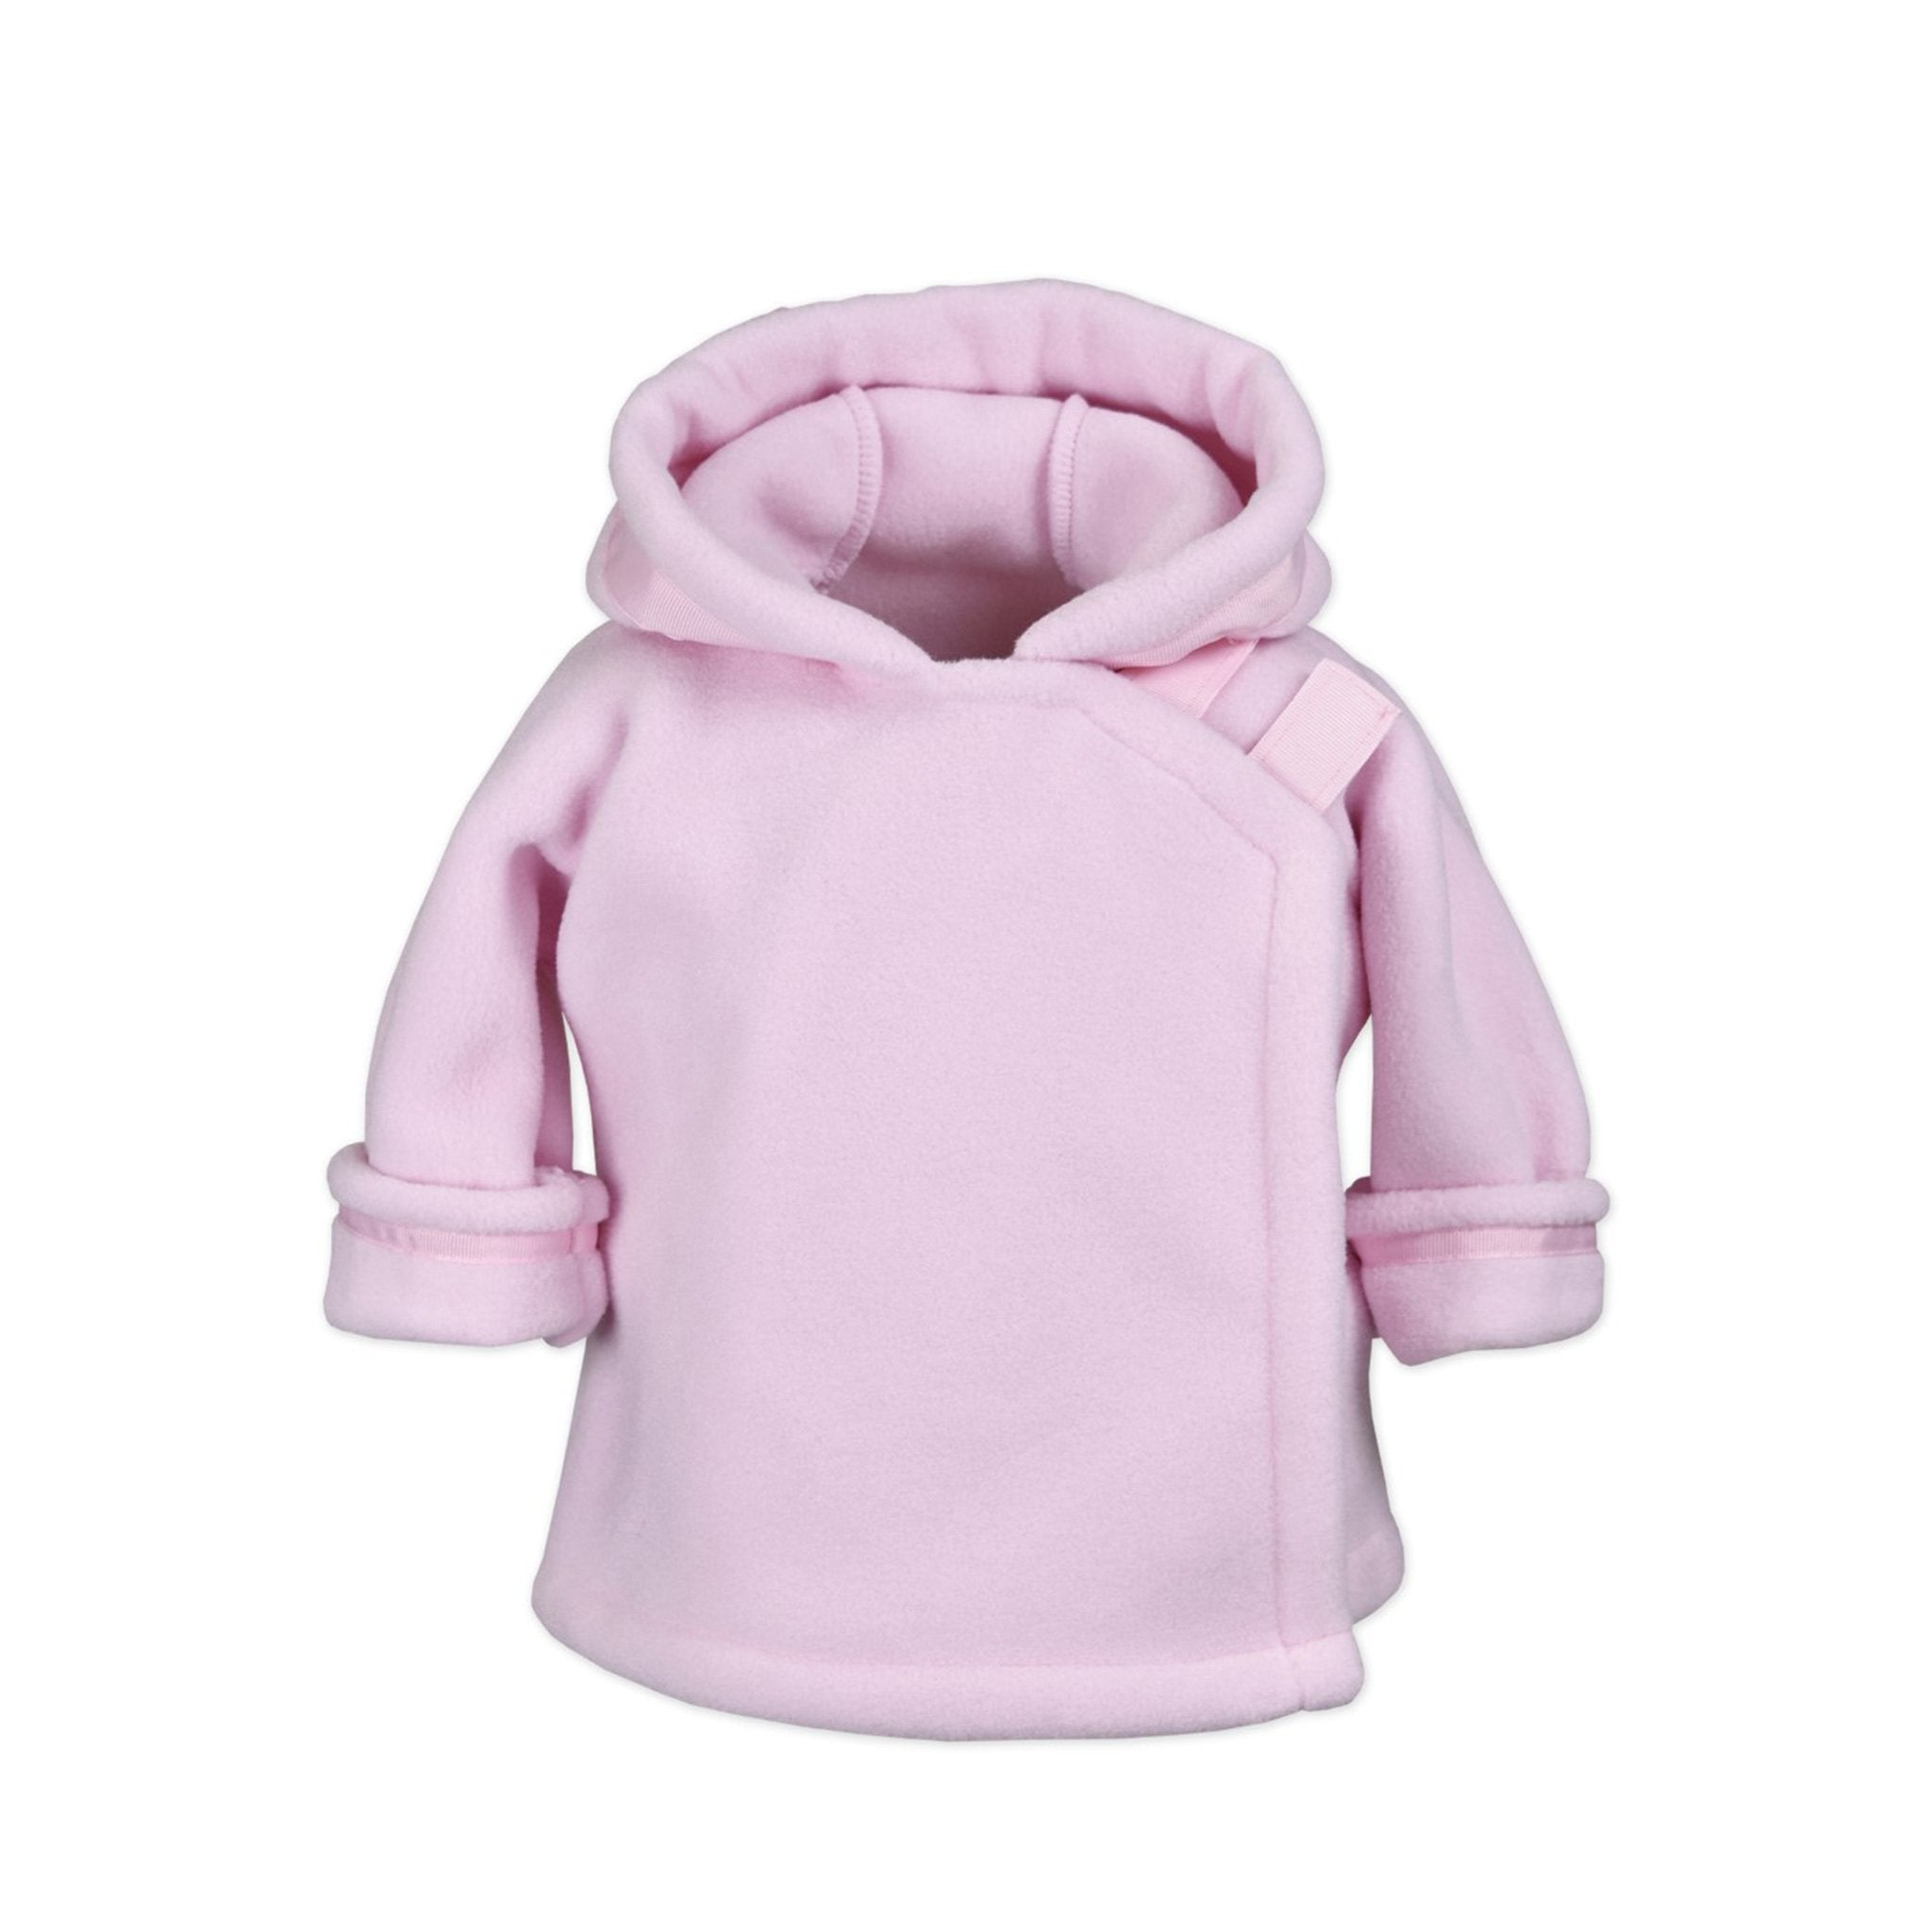 Light Pink Polartec Pullover Jacket